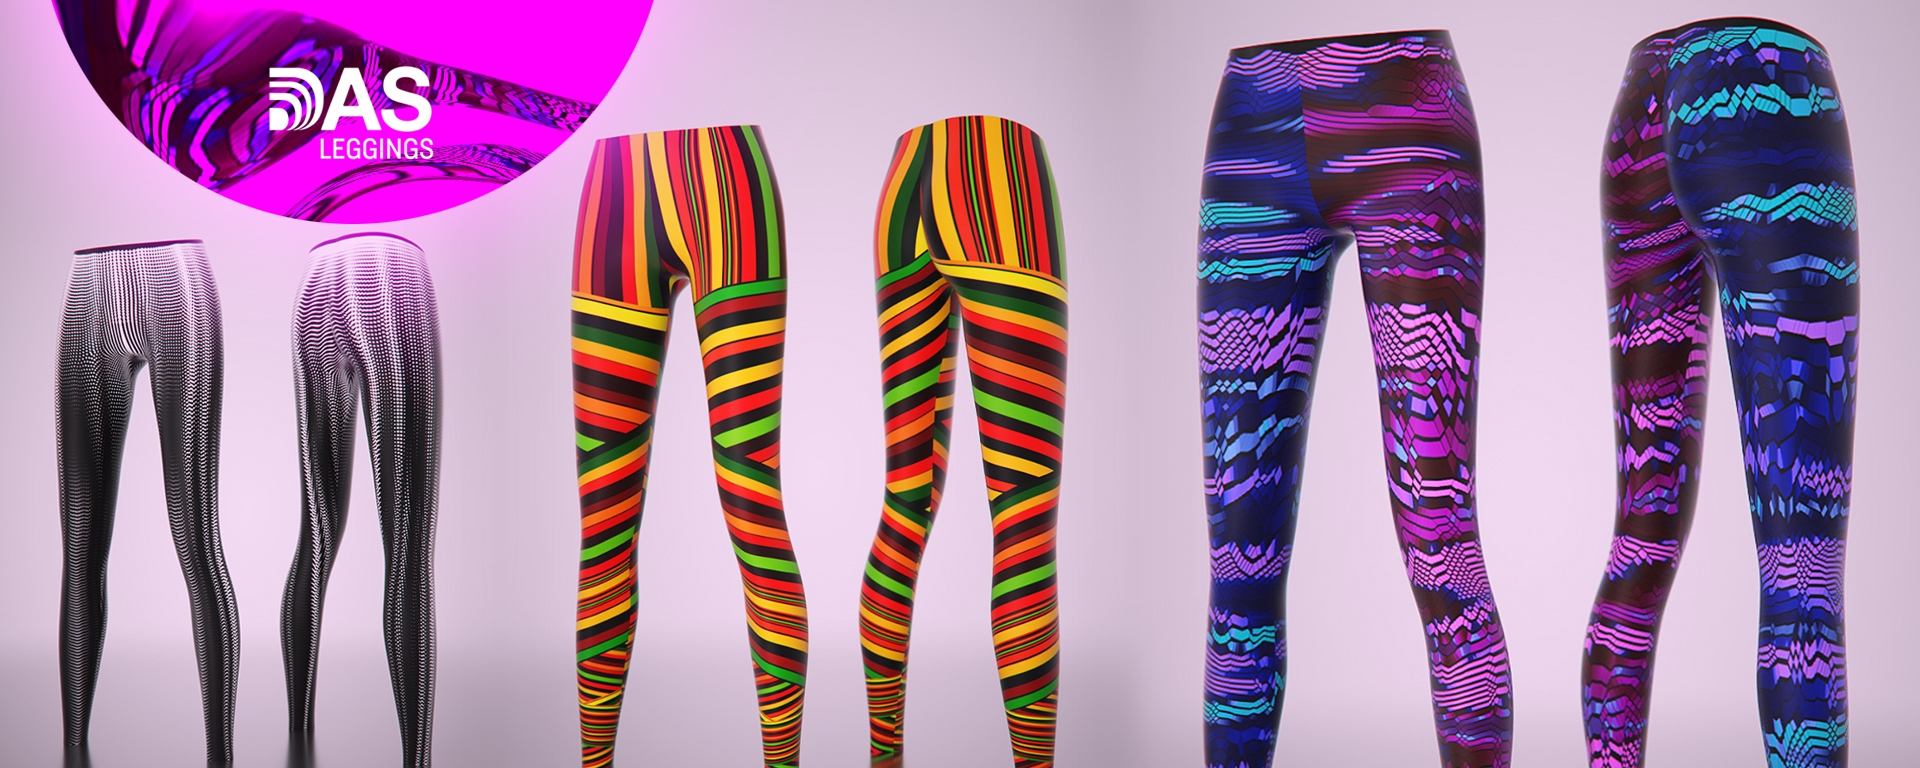 banner_DasLeggings.jpg